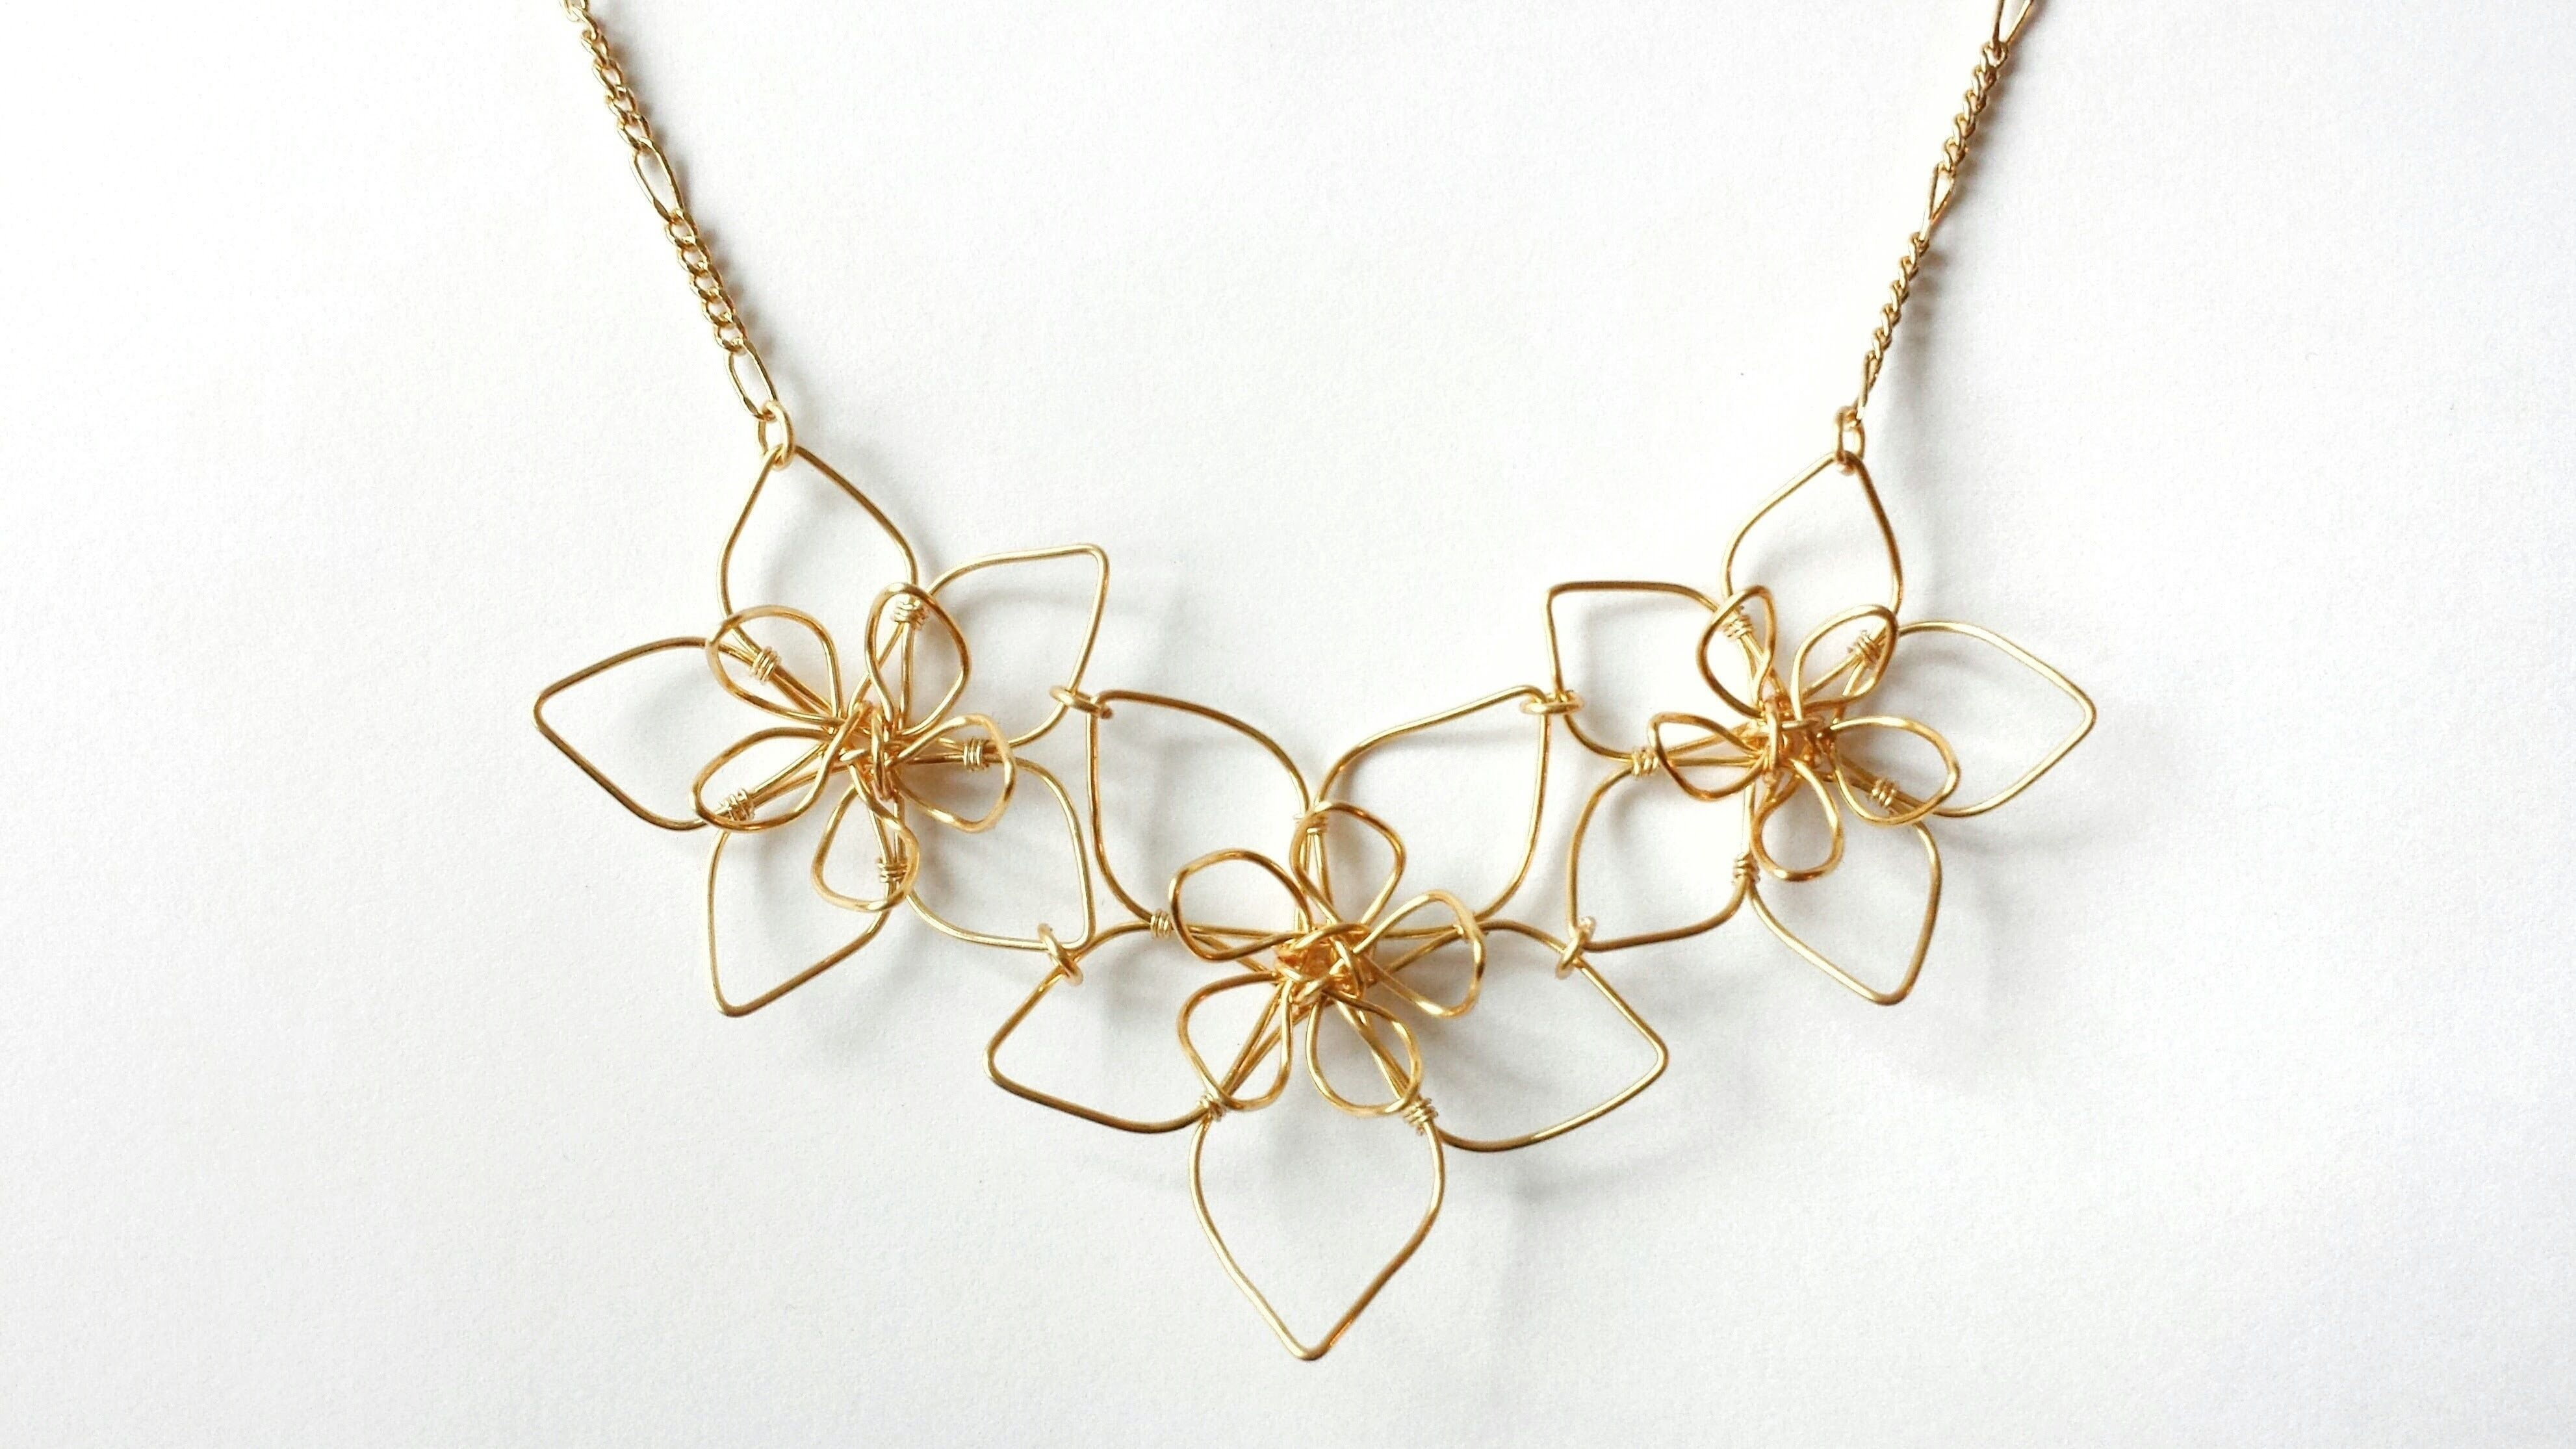 Wire Flower Necklace Wire Flowers How To Make Necklaces